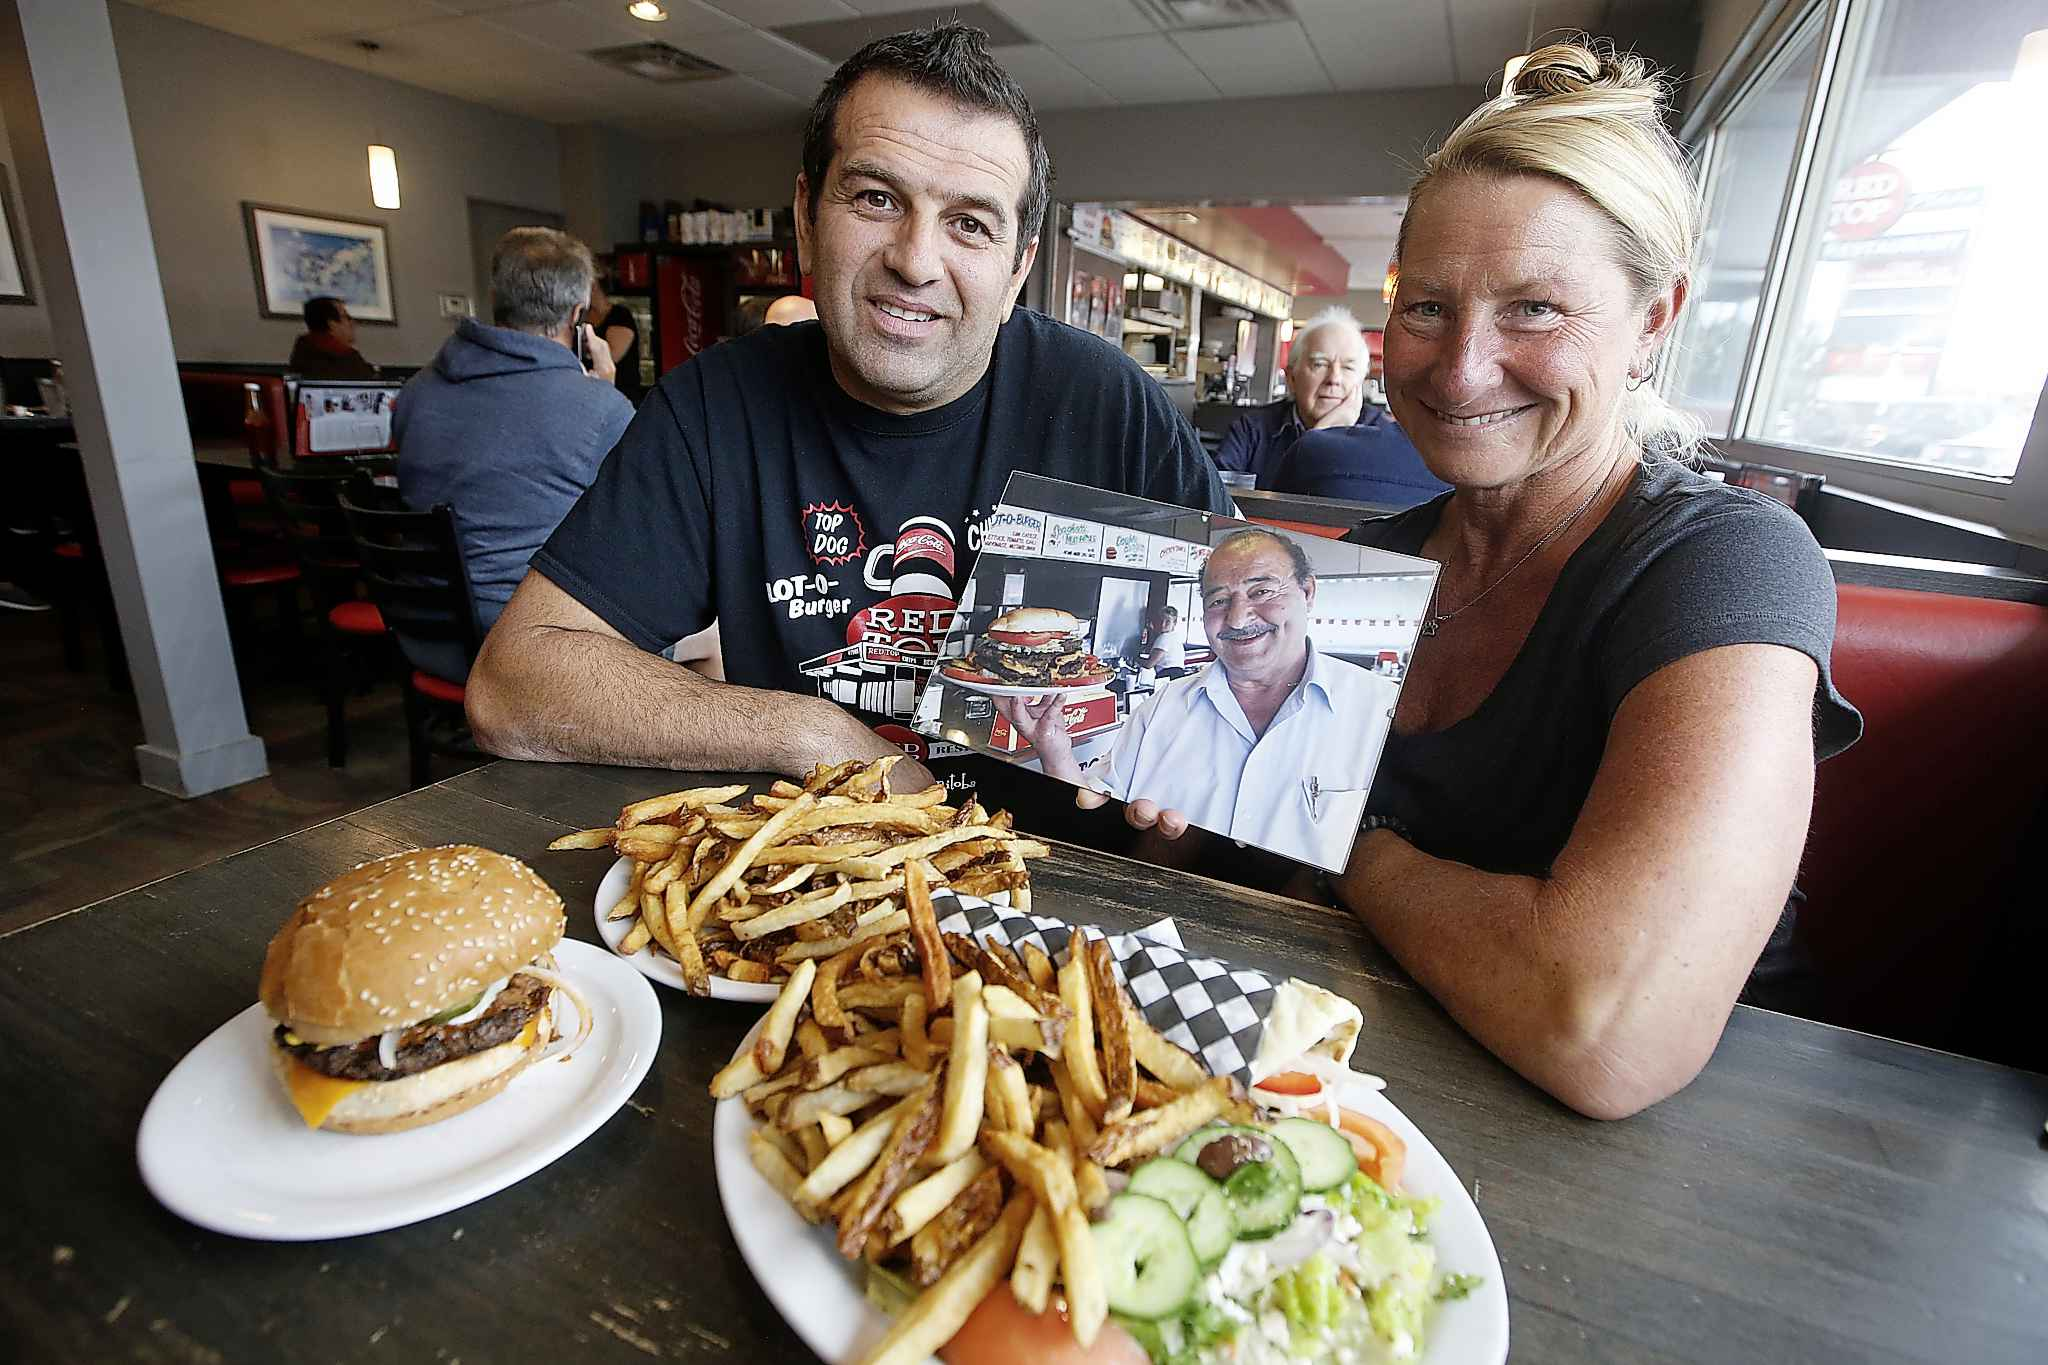 Stavros Athanasiadis, owner, and Evelyn Campbell, employee for 37 years, hold a photo of the original owner. (John Woods / Winnipeg Free Press)